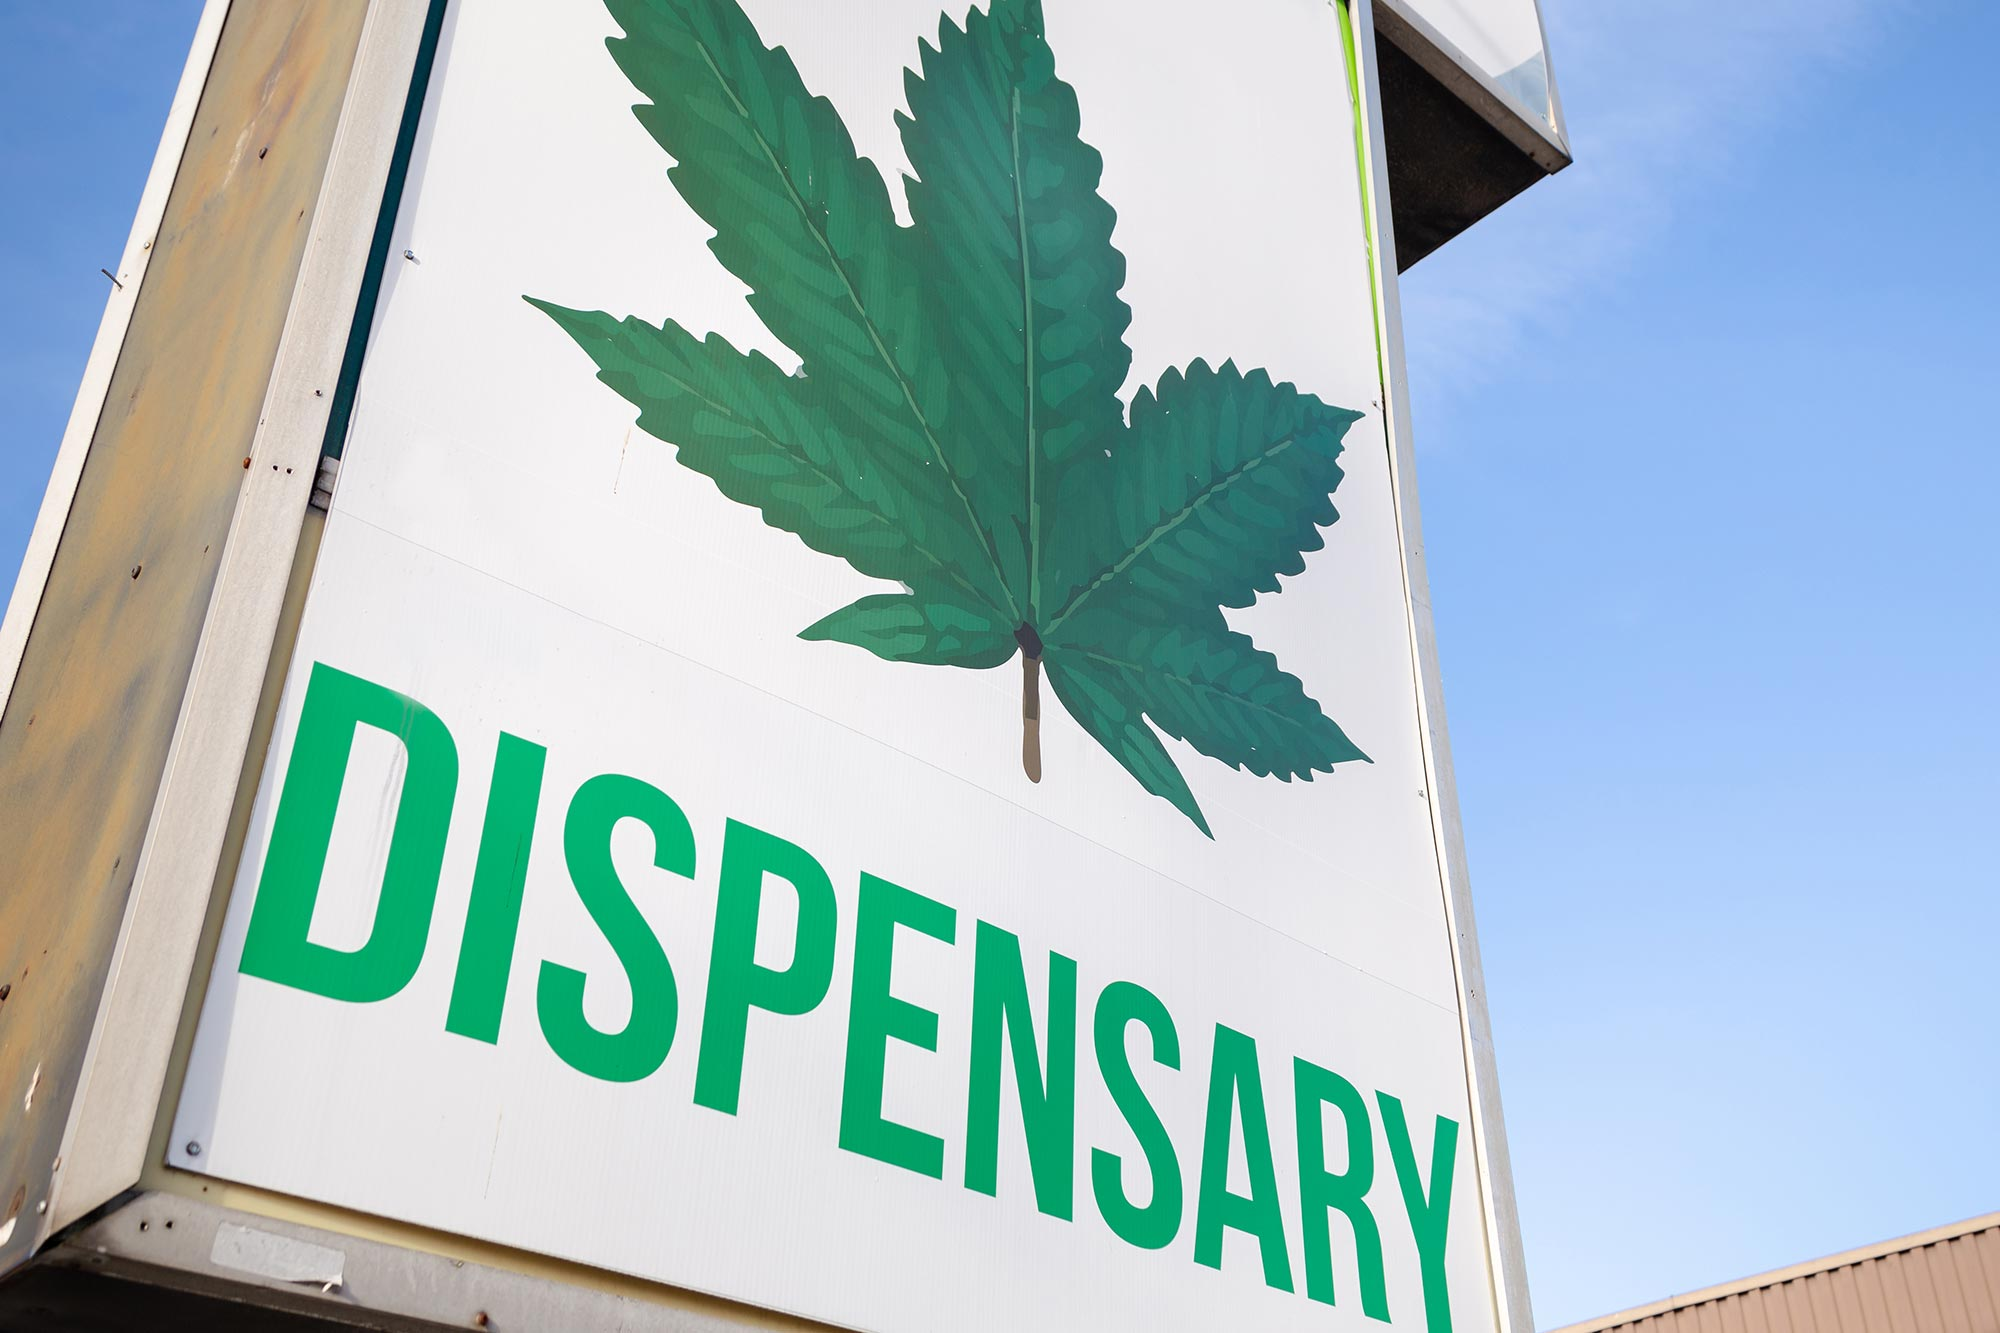 Access to Legal Cannabis Stores Linked to Reduction in Opioid Deaths